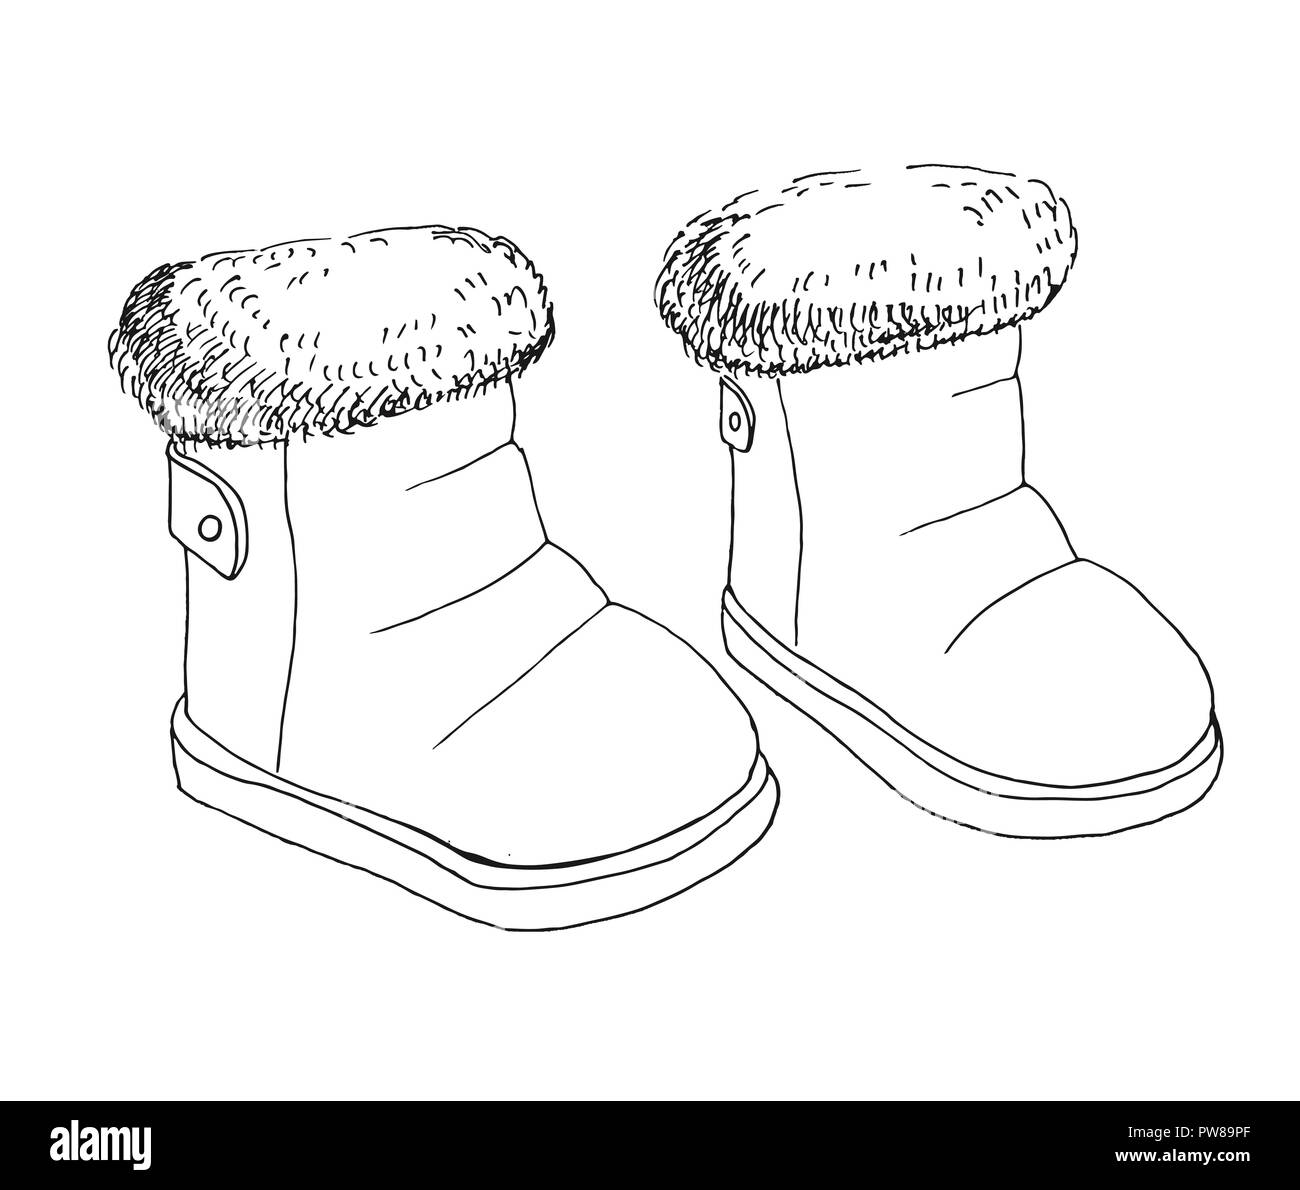 Childrens Shoes Black and White Stock Photos & Images - Alamy